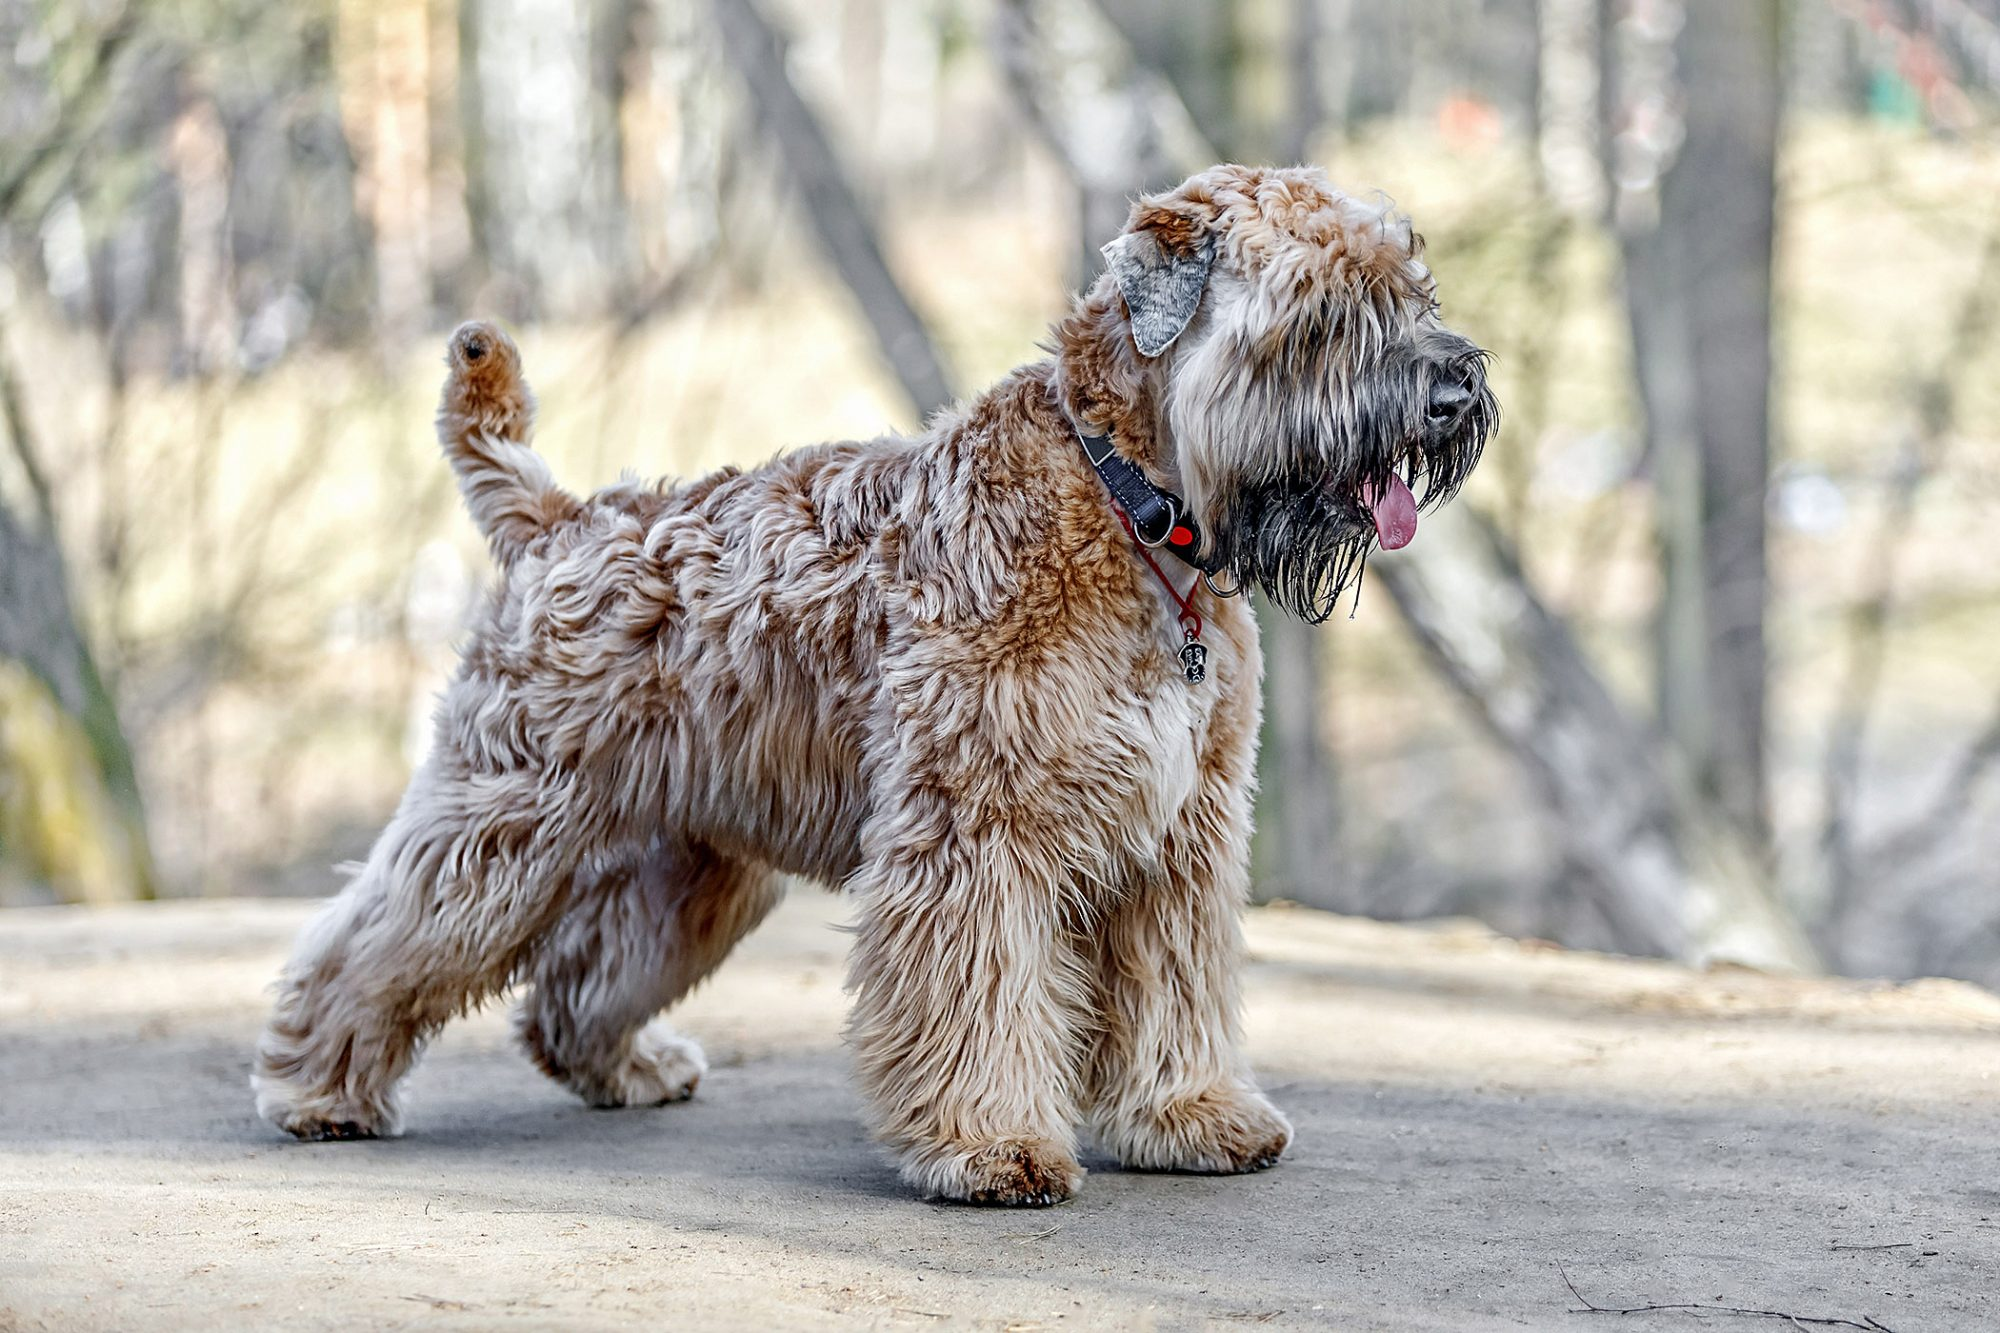 soft coated wheaten terrier standing on dirt path